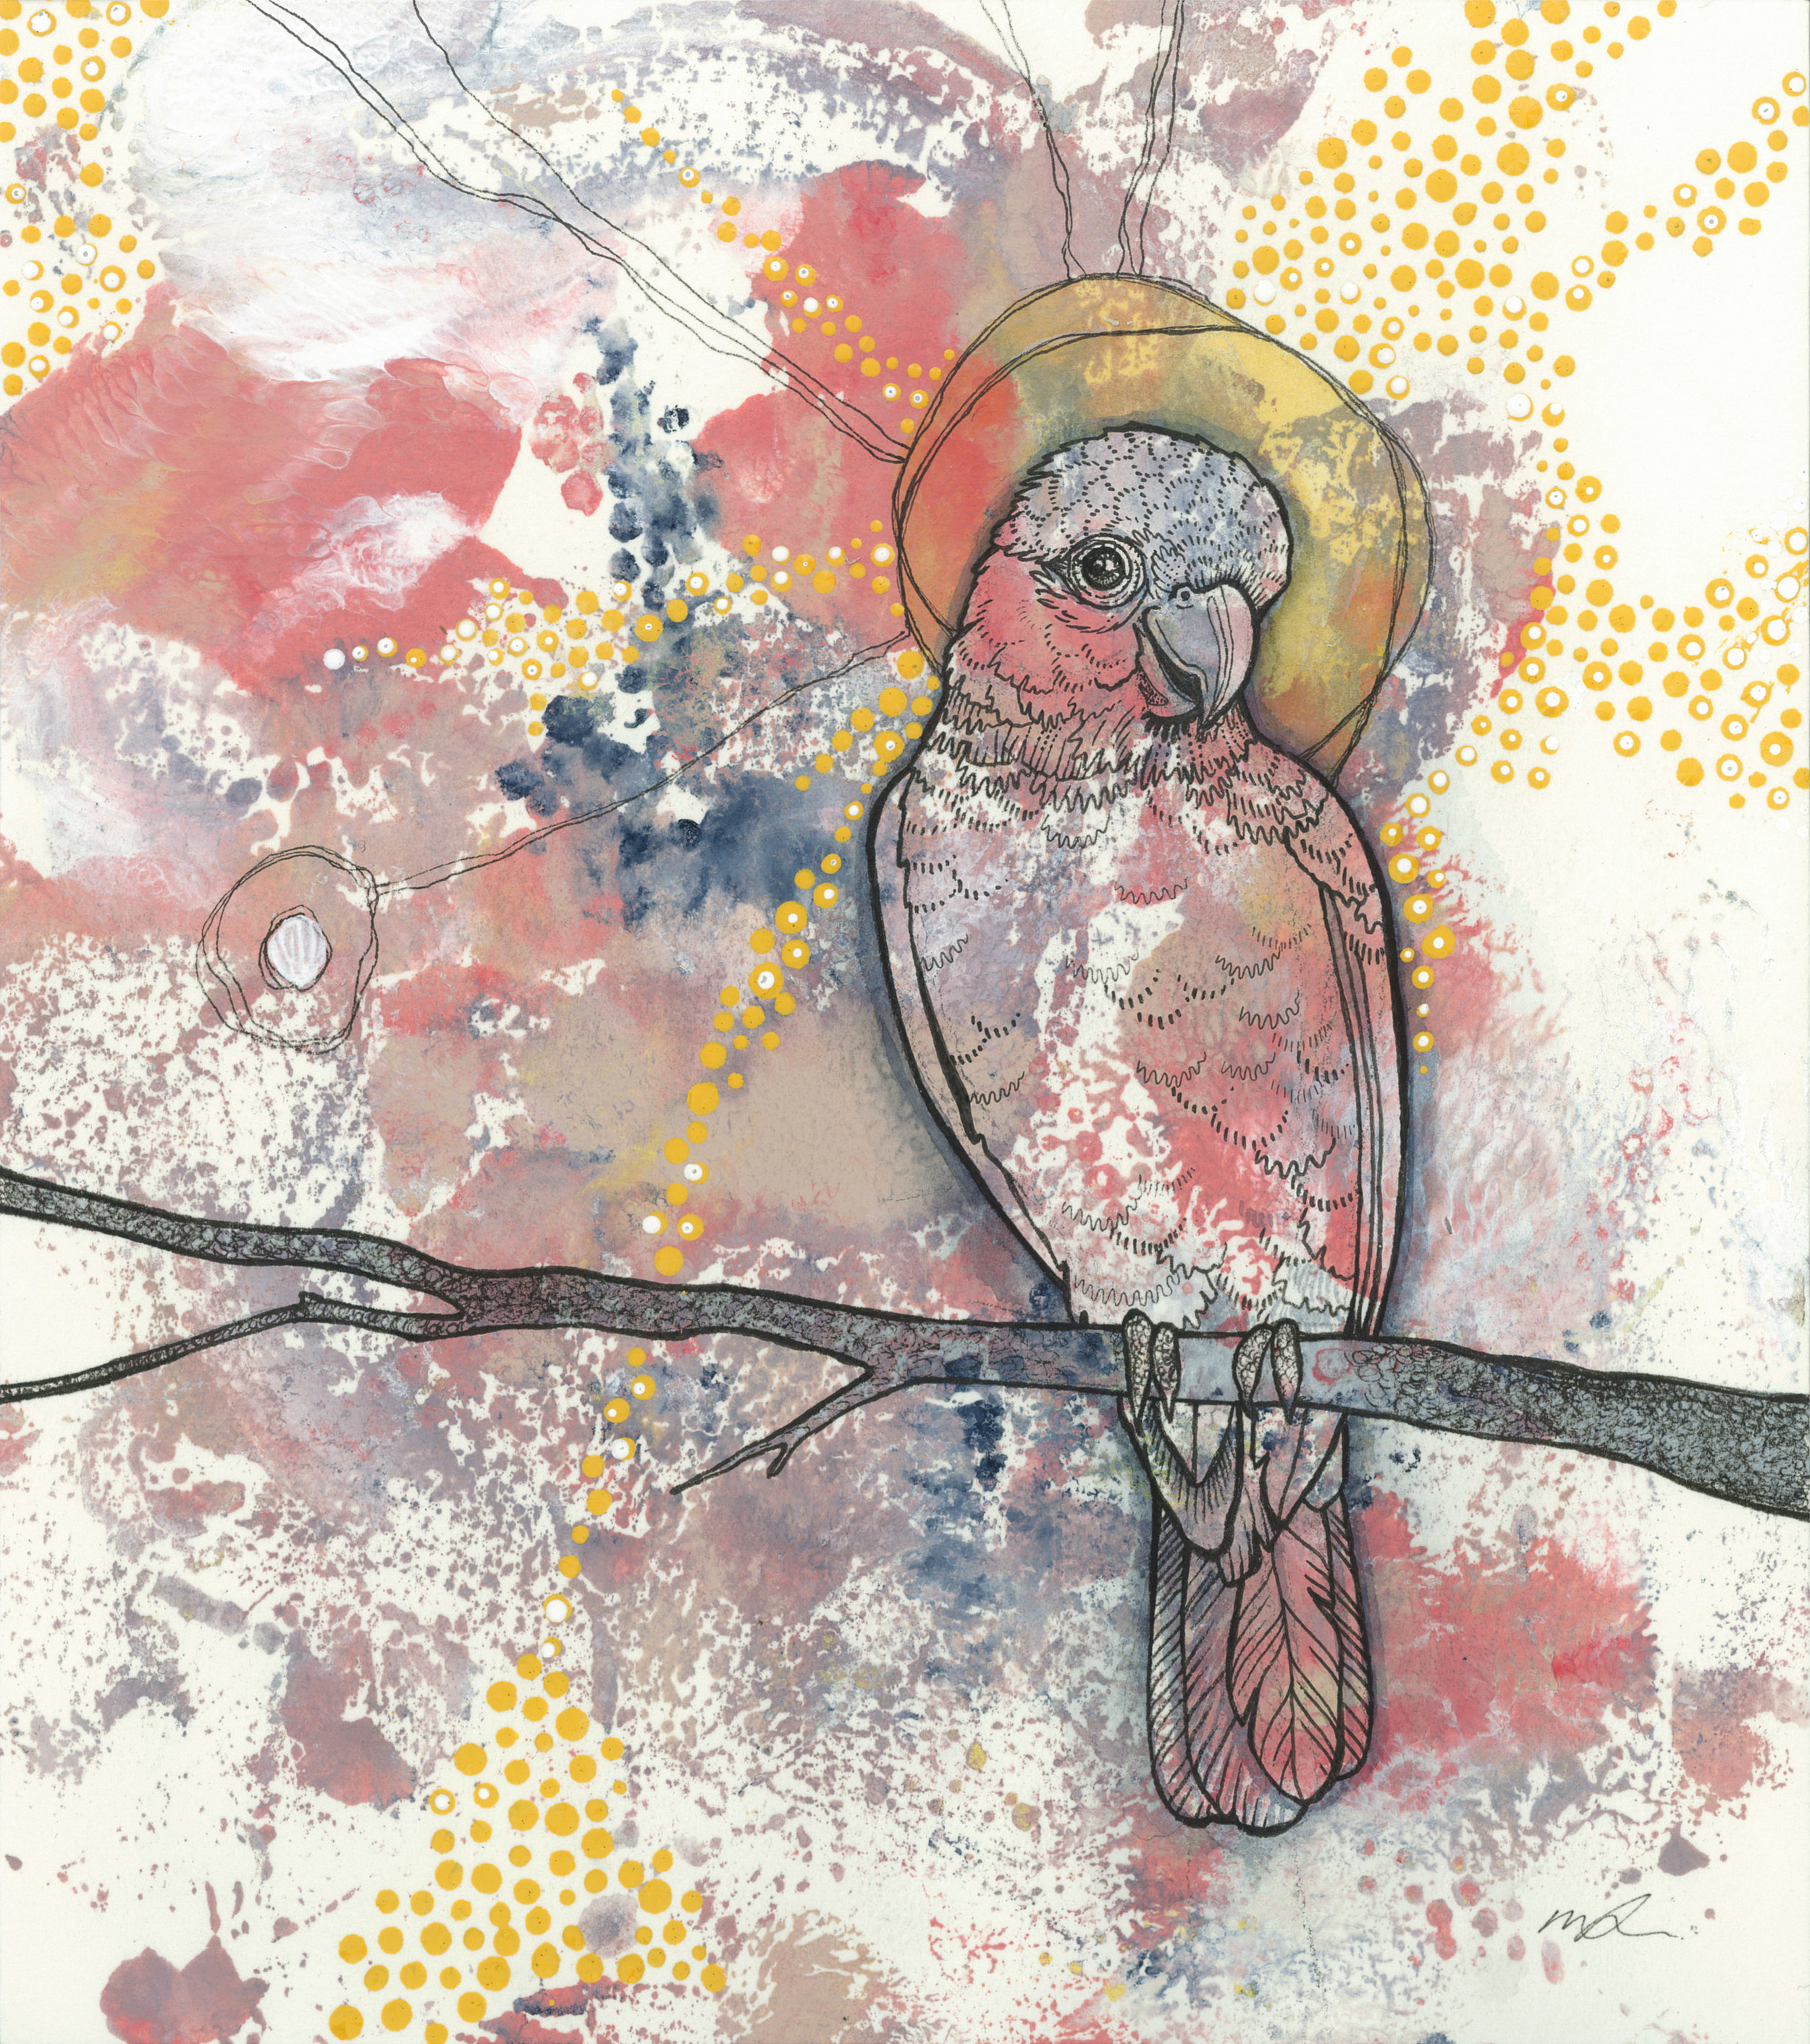 In a Flutter 2018 Ink, Watercolour and Acrylic on 100% cotton paper